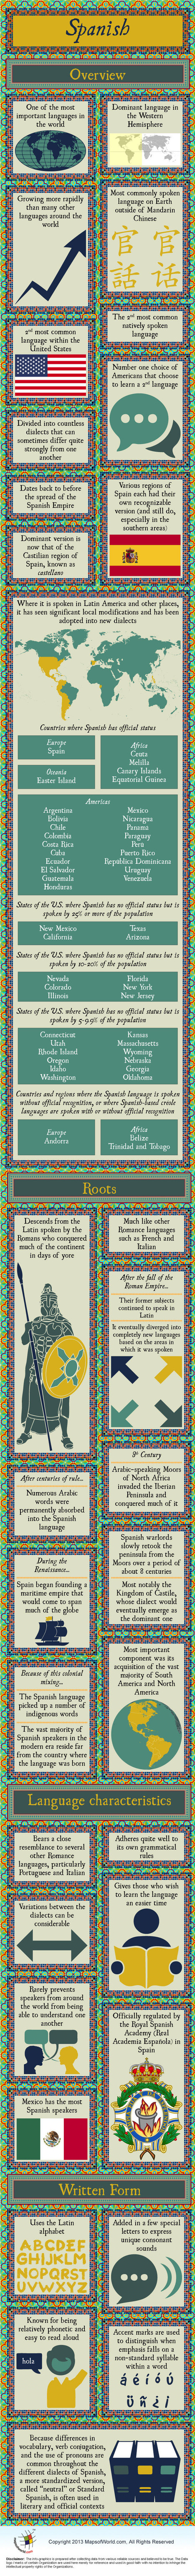 Spanish Language – Facts & Infographic | Languages of the World | Spanish Teaching Resources | Scoop.it